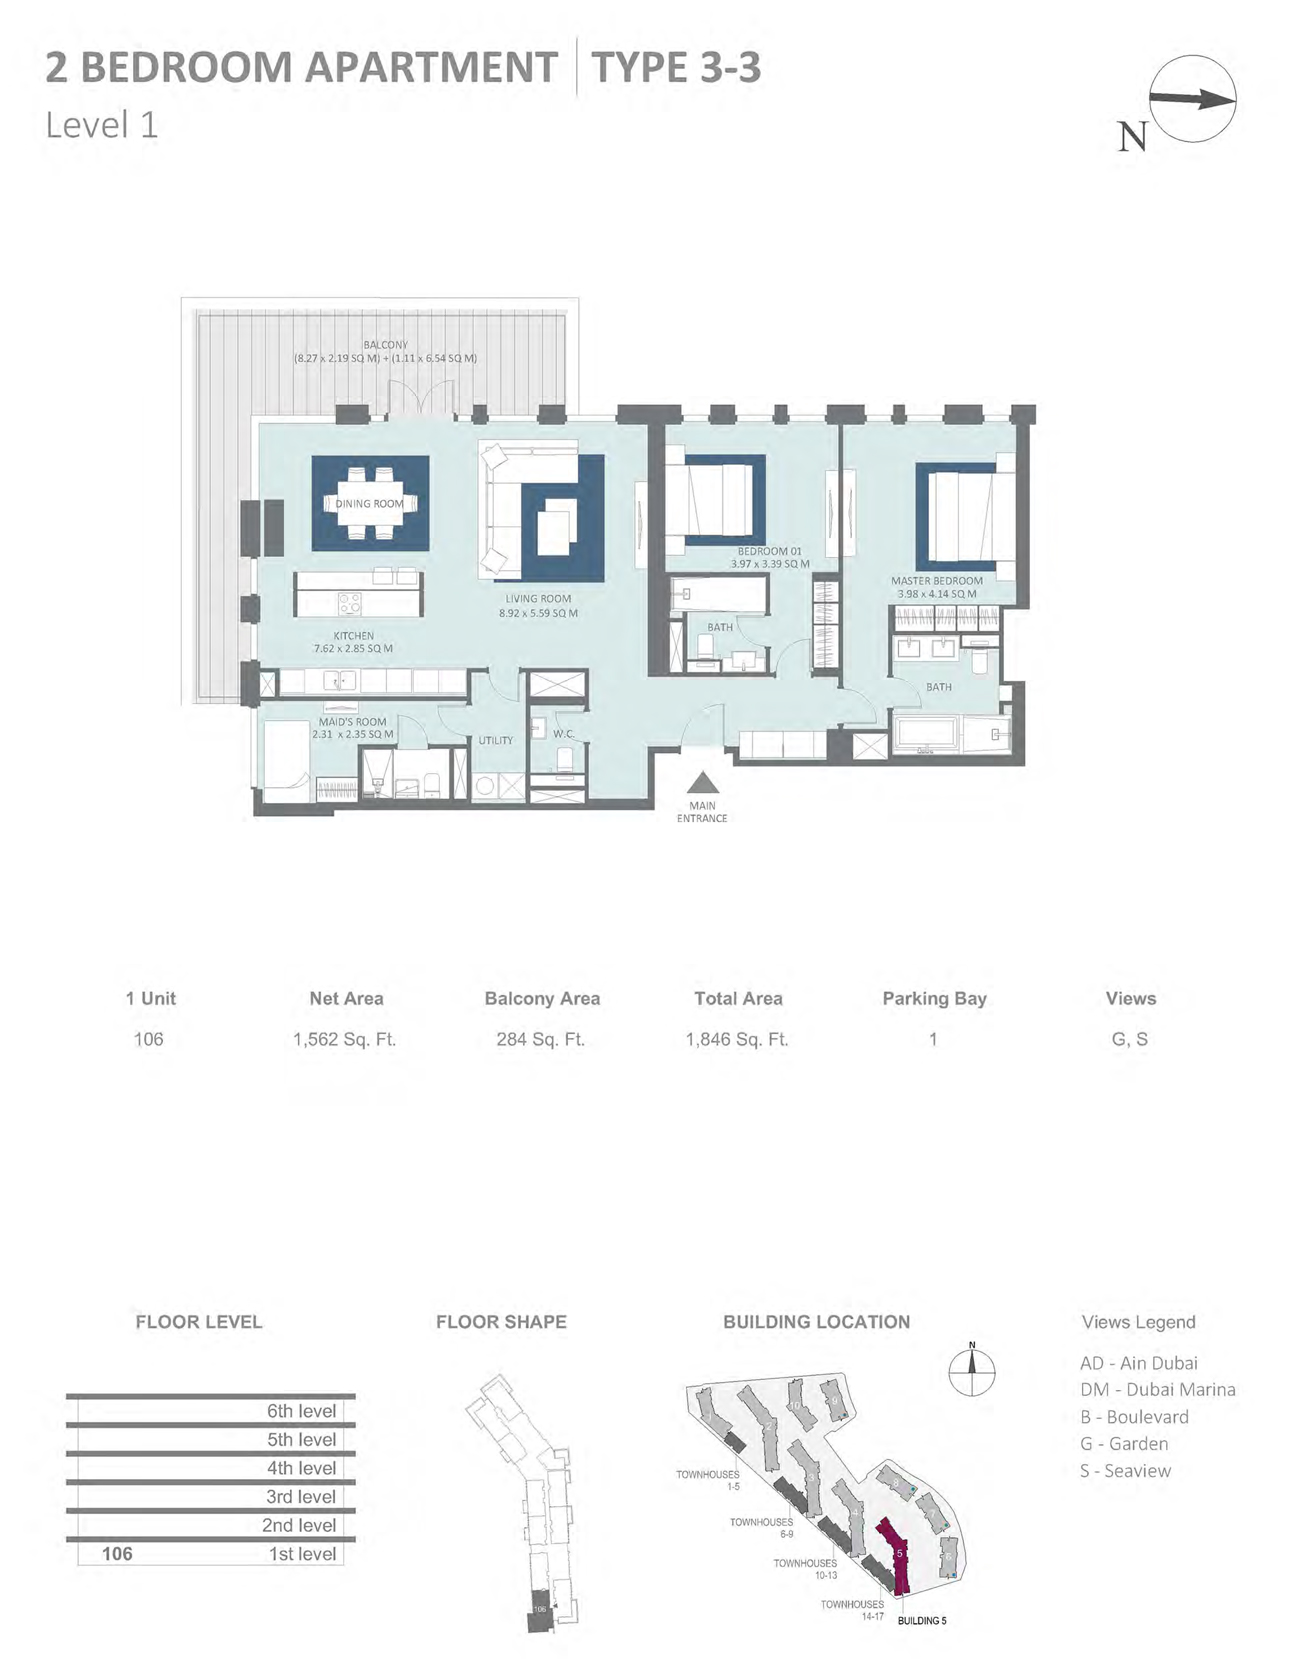 Building 5 - 2 Bedroom Type 3-3 Level 1 , Size 1562    sq. ft.